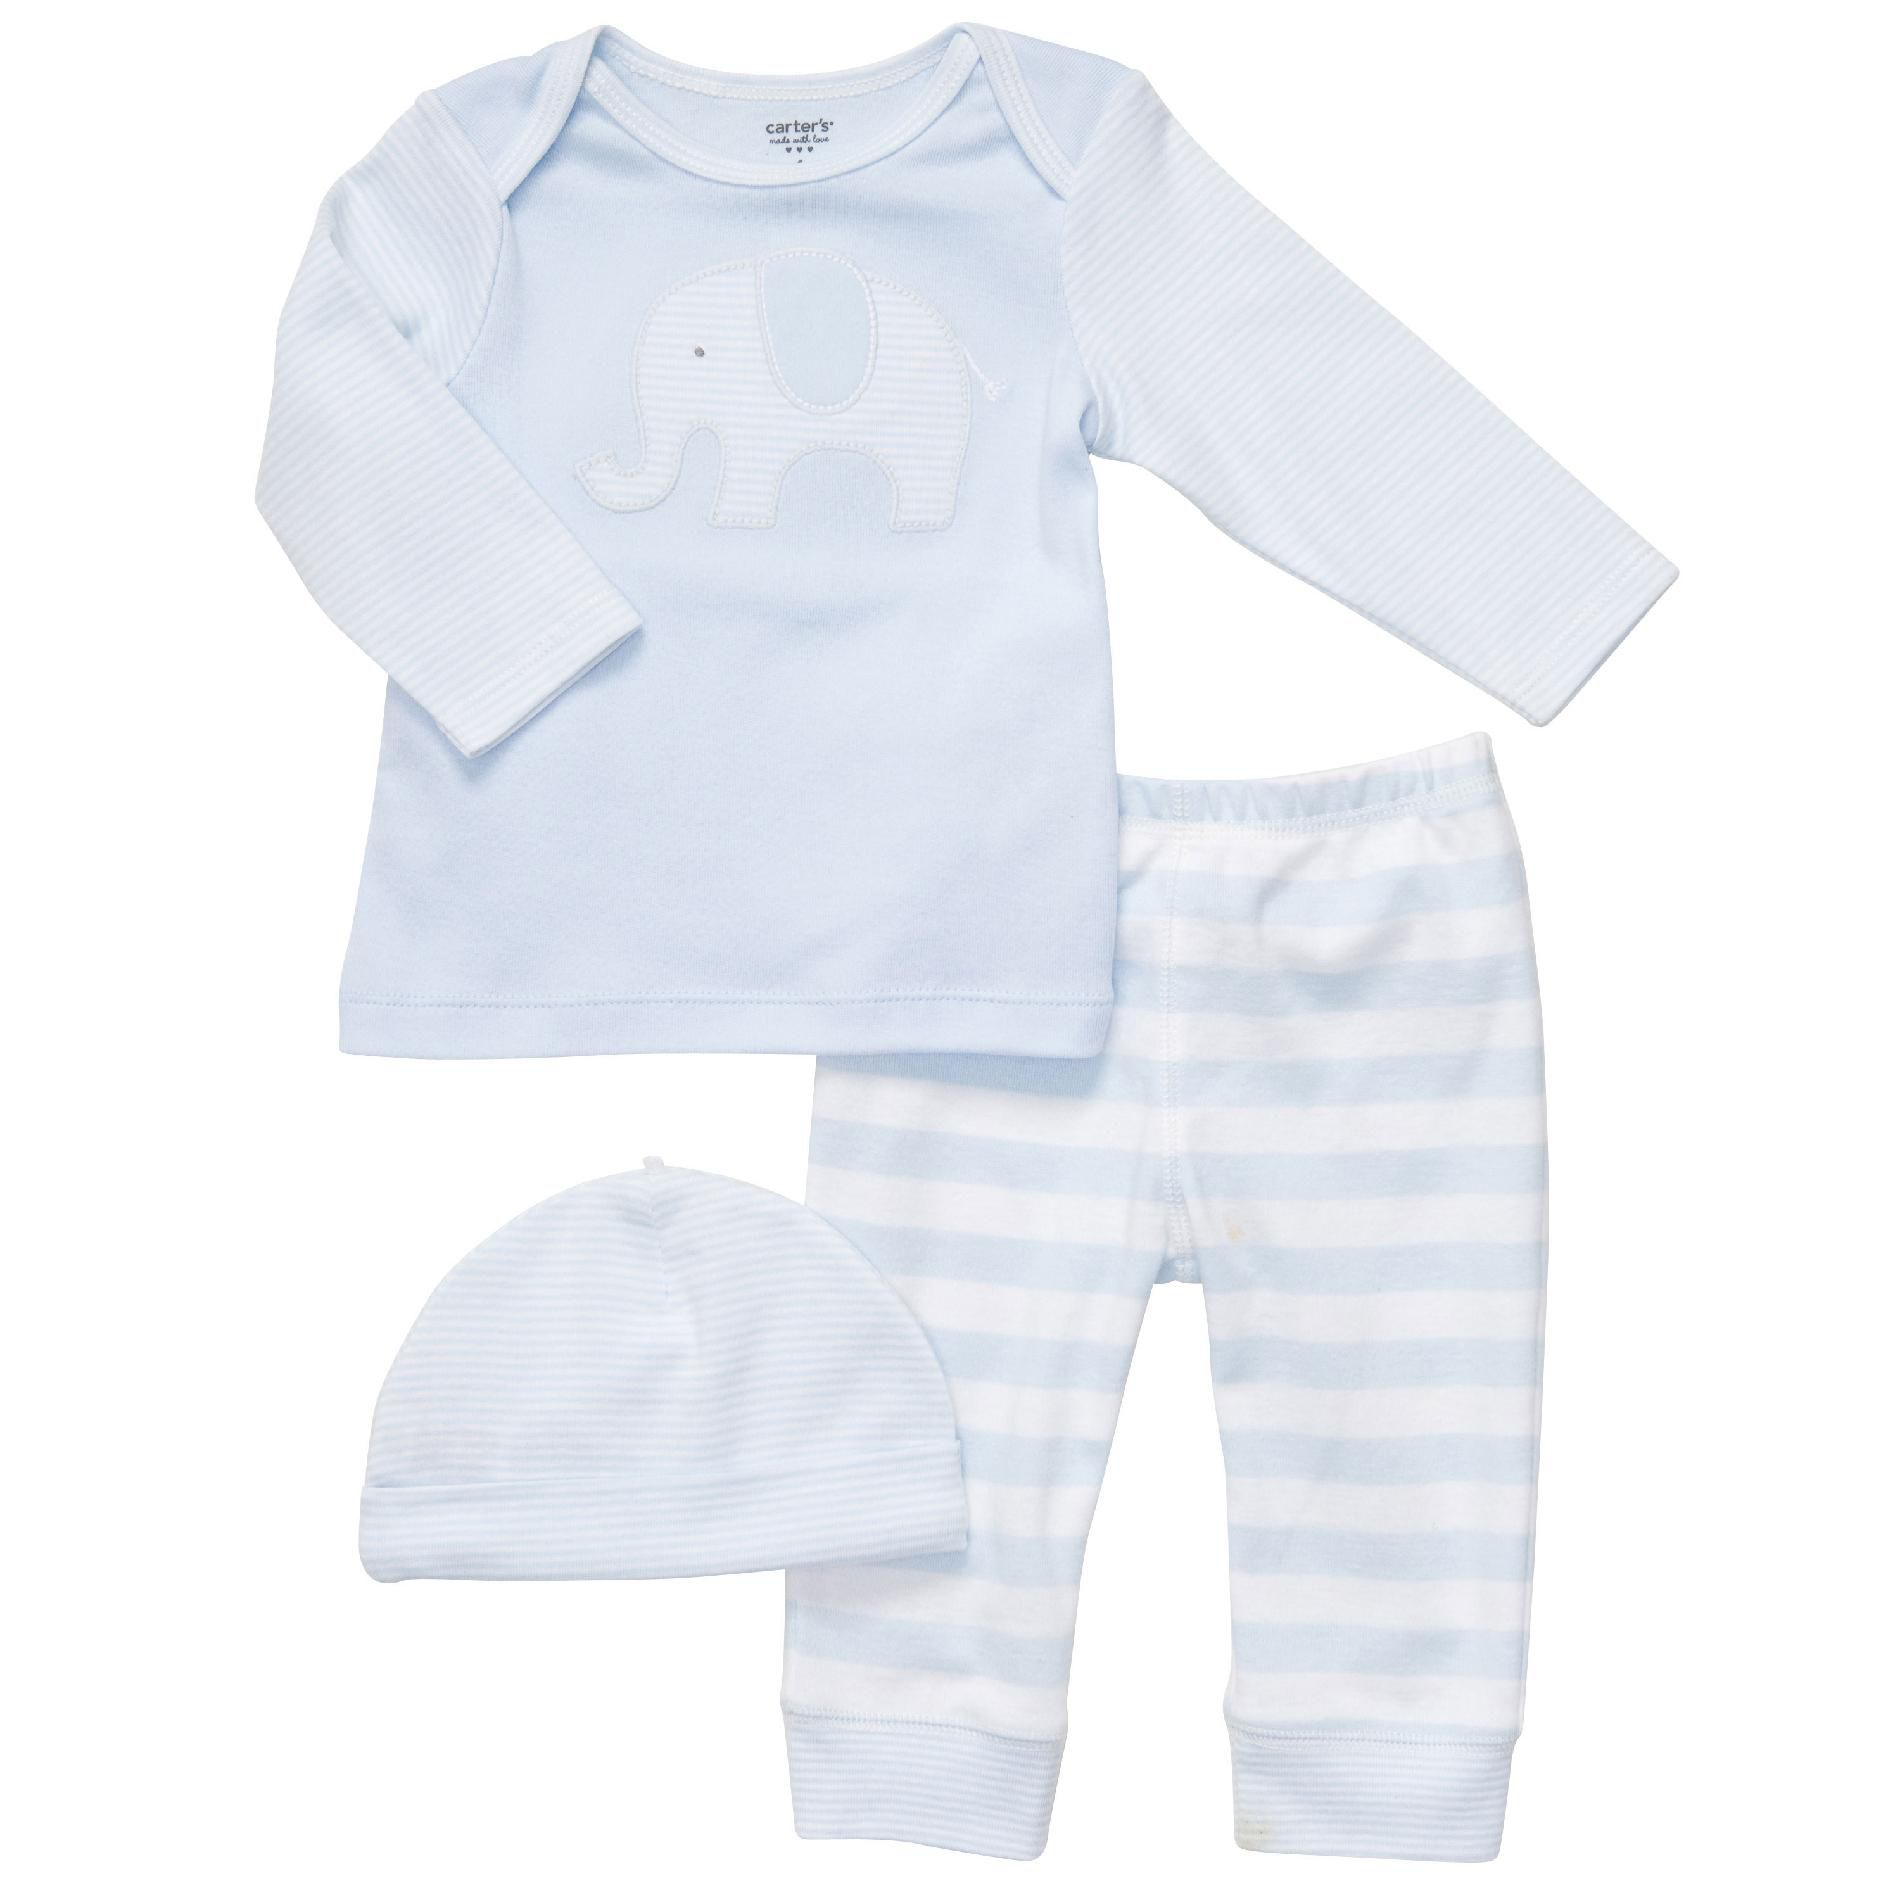 Infant Set 3pc Blue Elephant with Cap Cotton-Blend